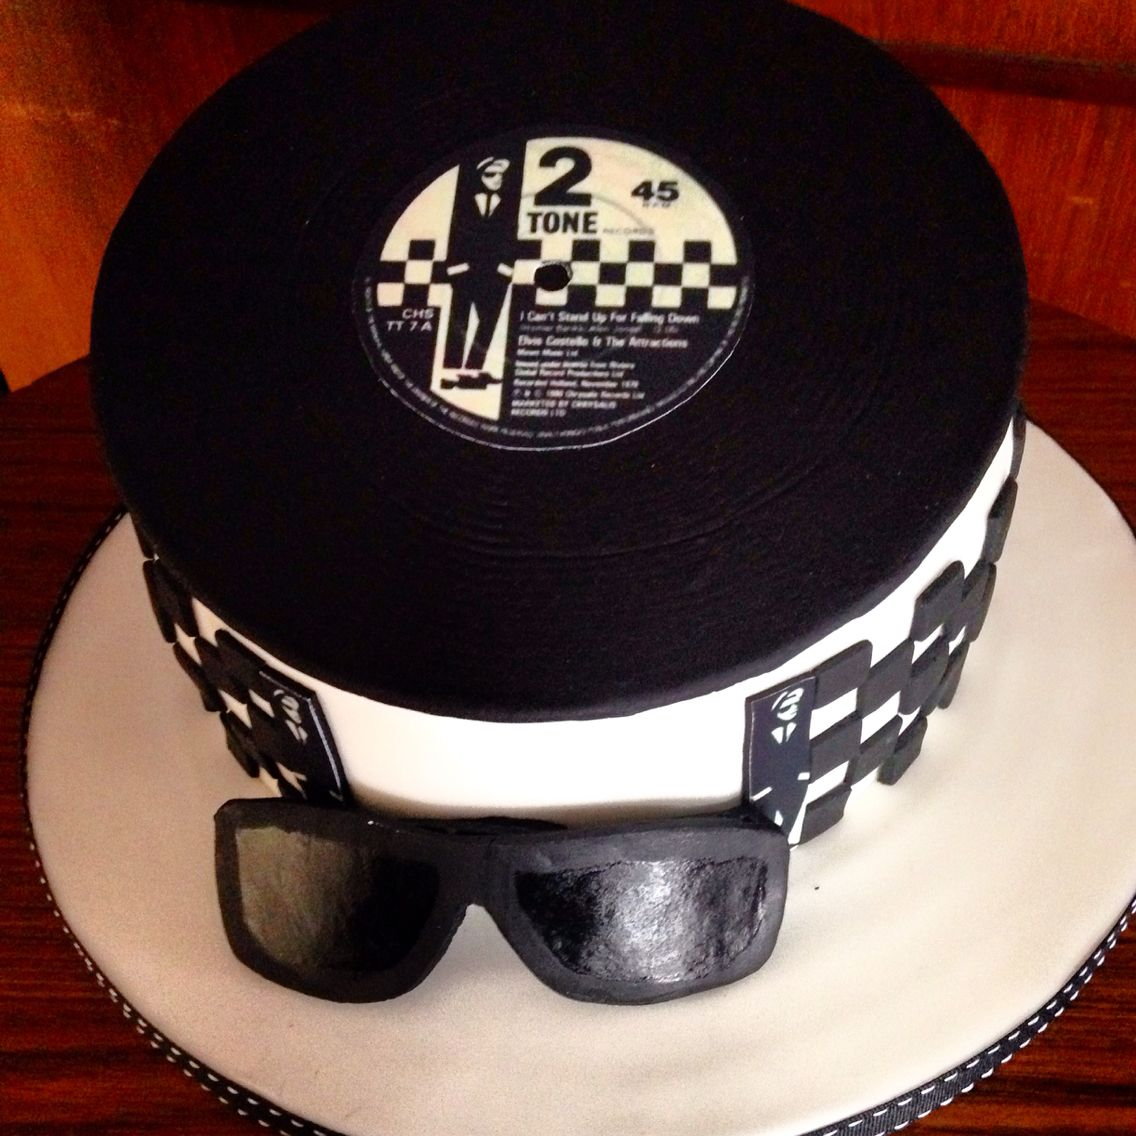 Arte Bella Ska What S Not To Love About A Ska Cake Rude Boy